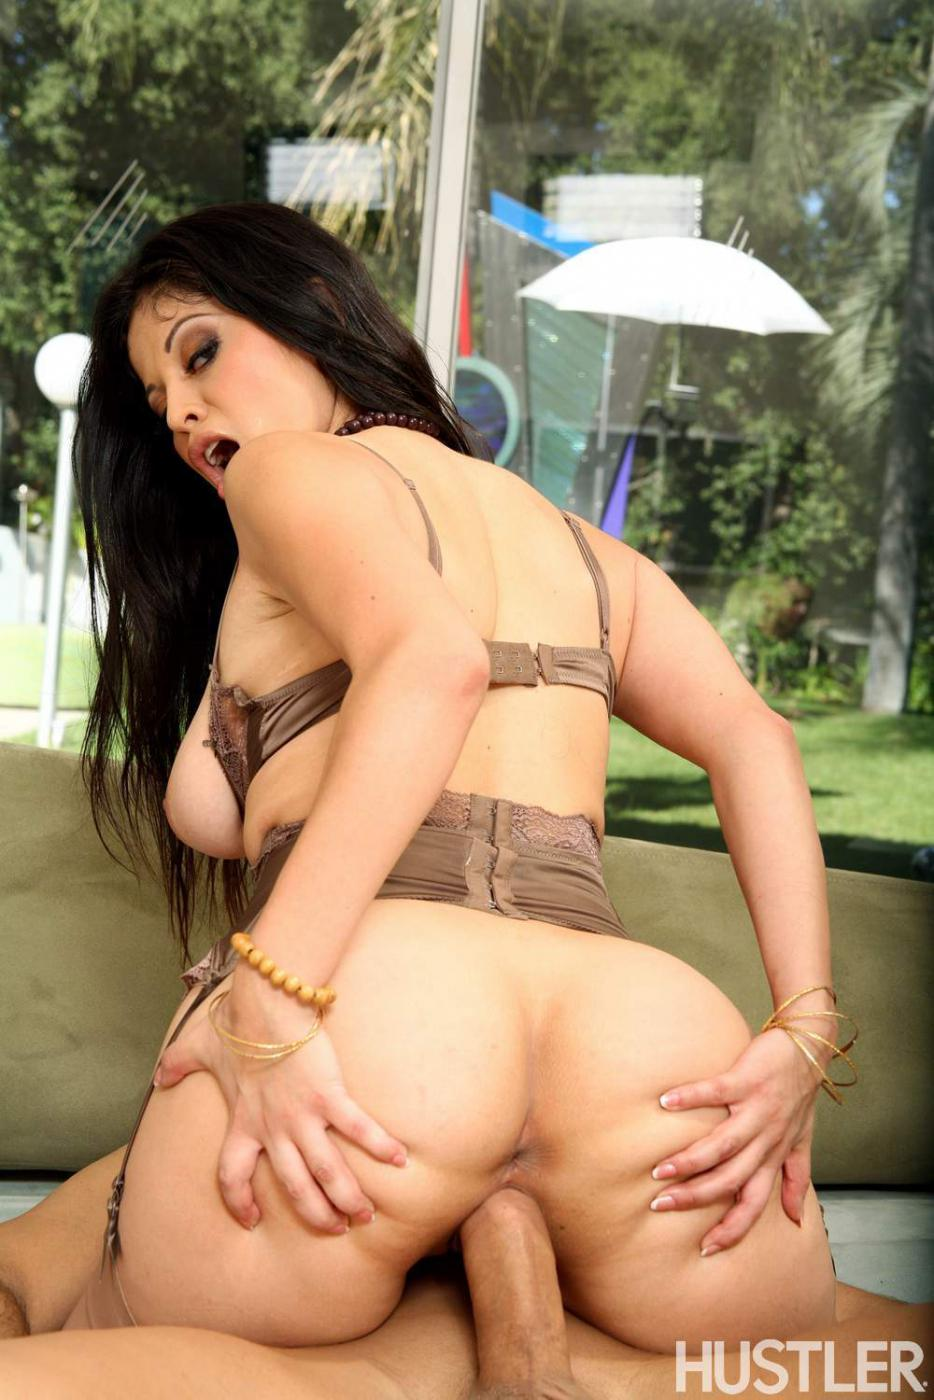 Evie Delatosso Galleries evie delatosso porn gallery. big titted latina with